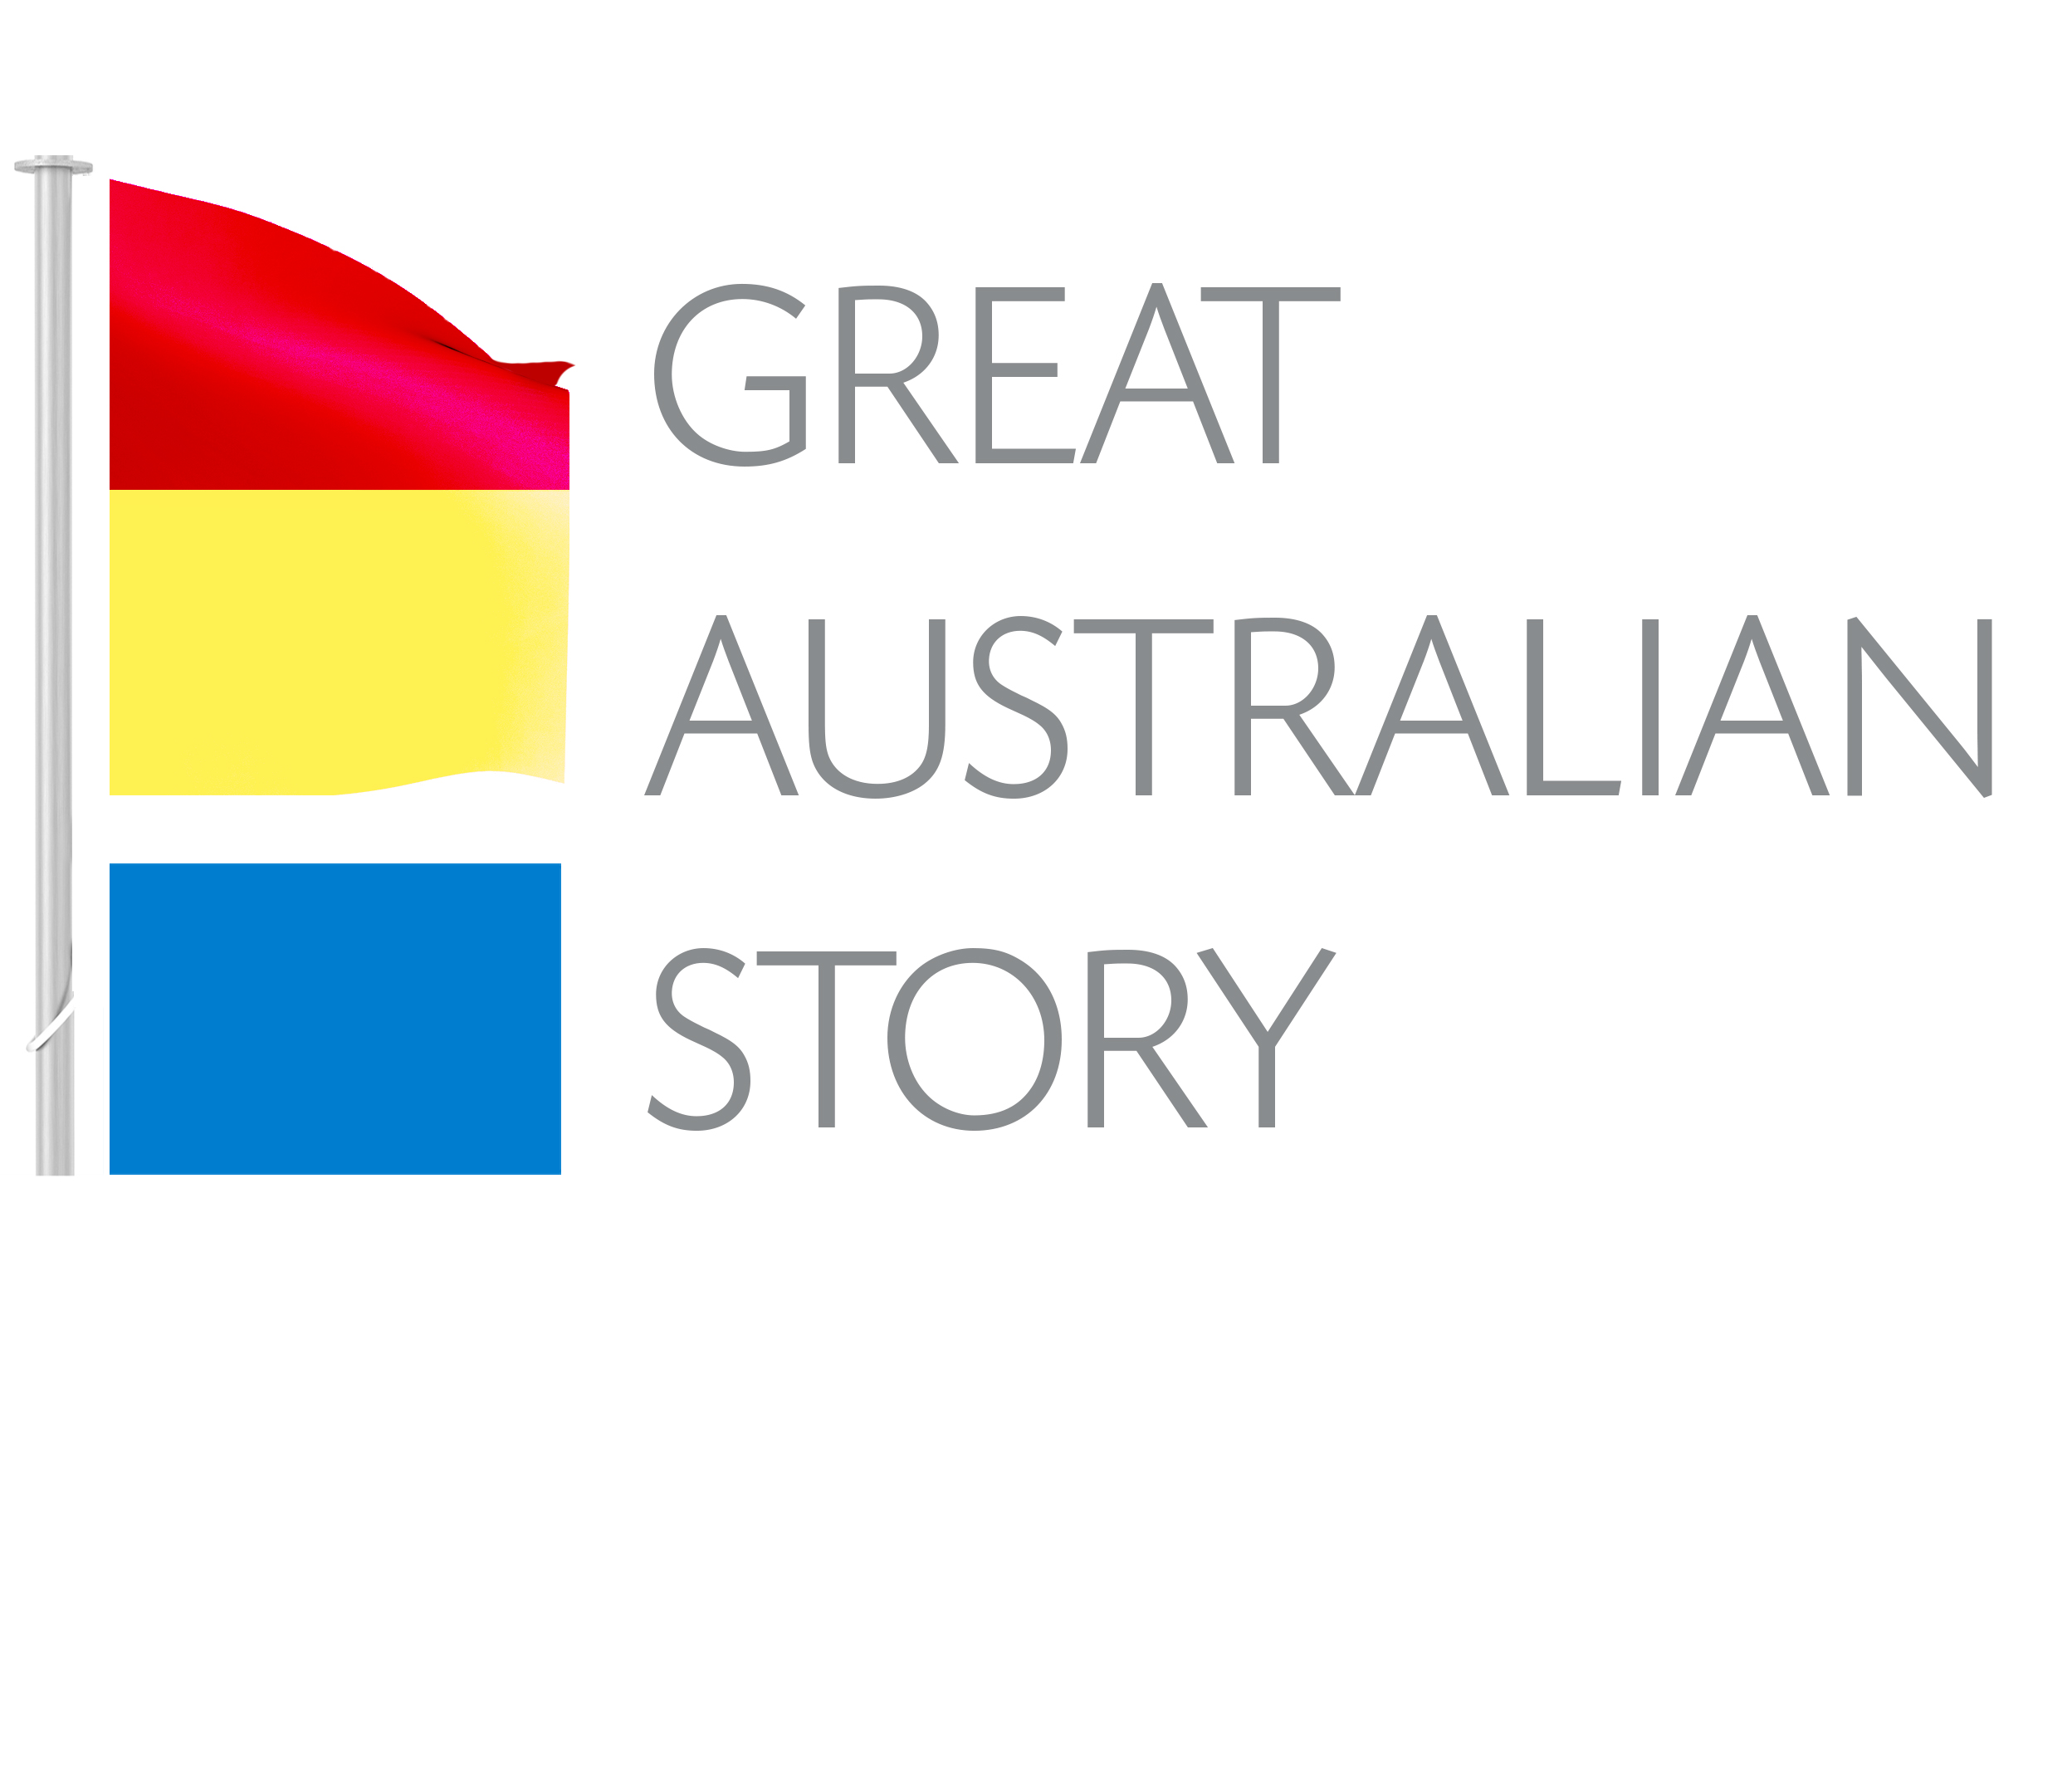 The Great Australian Story